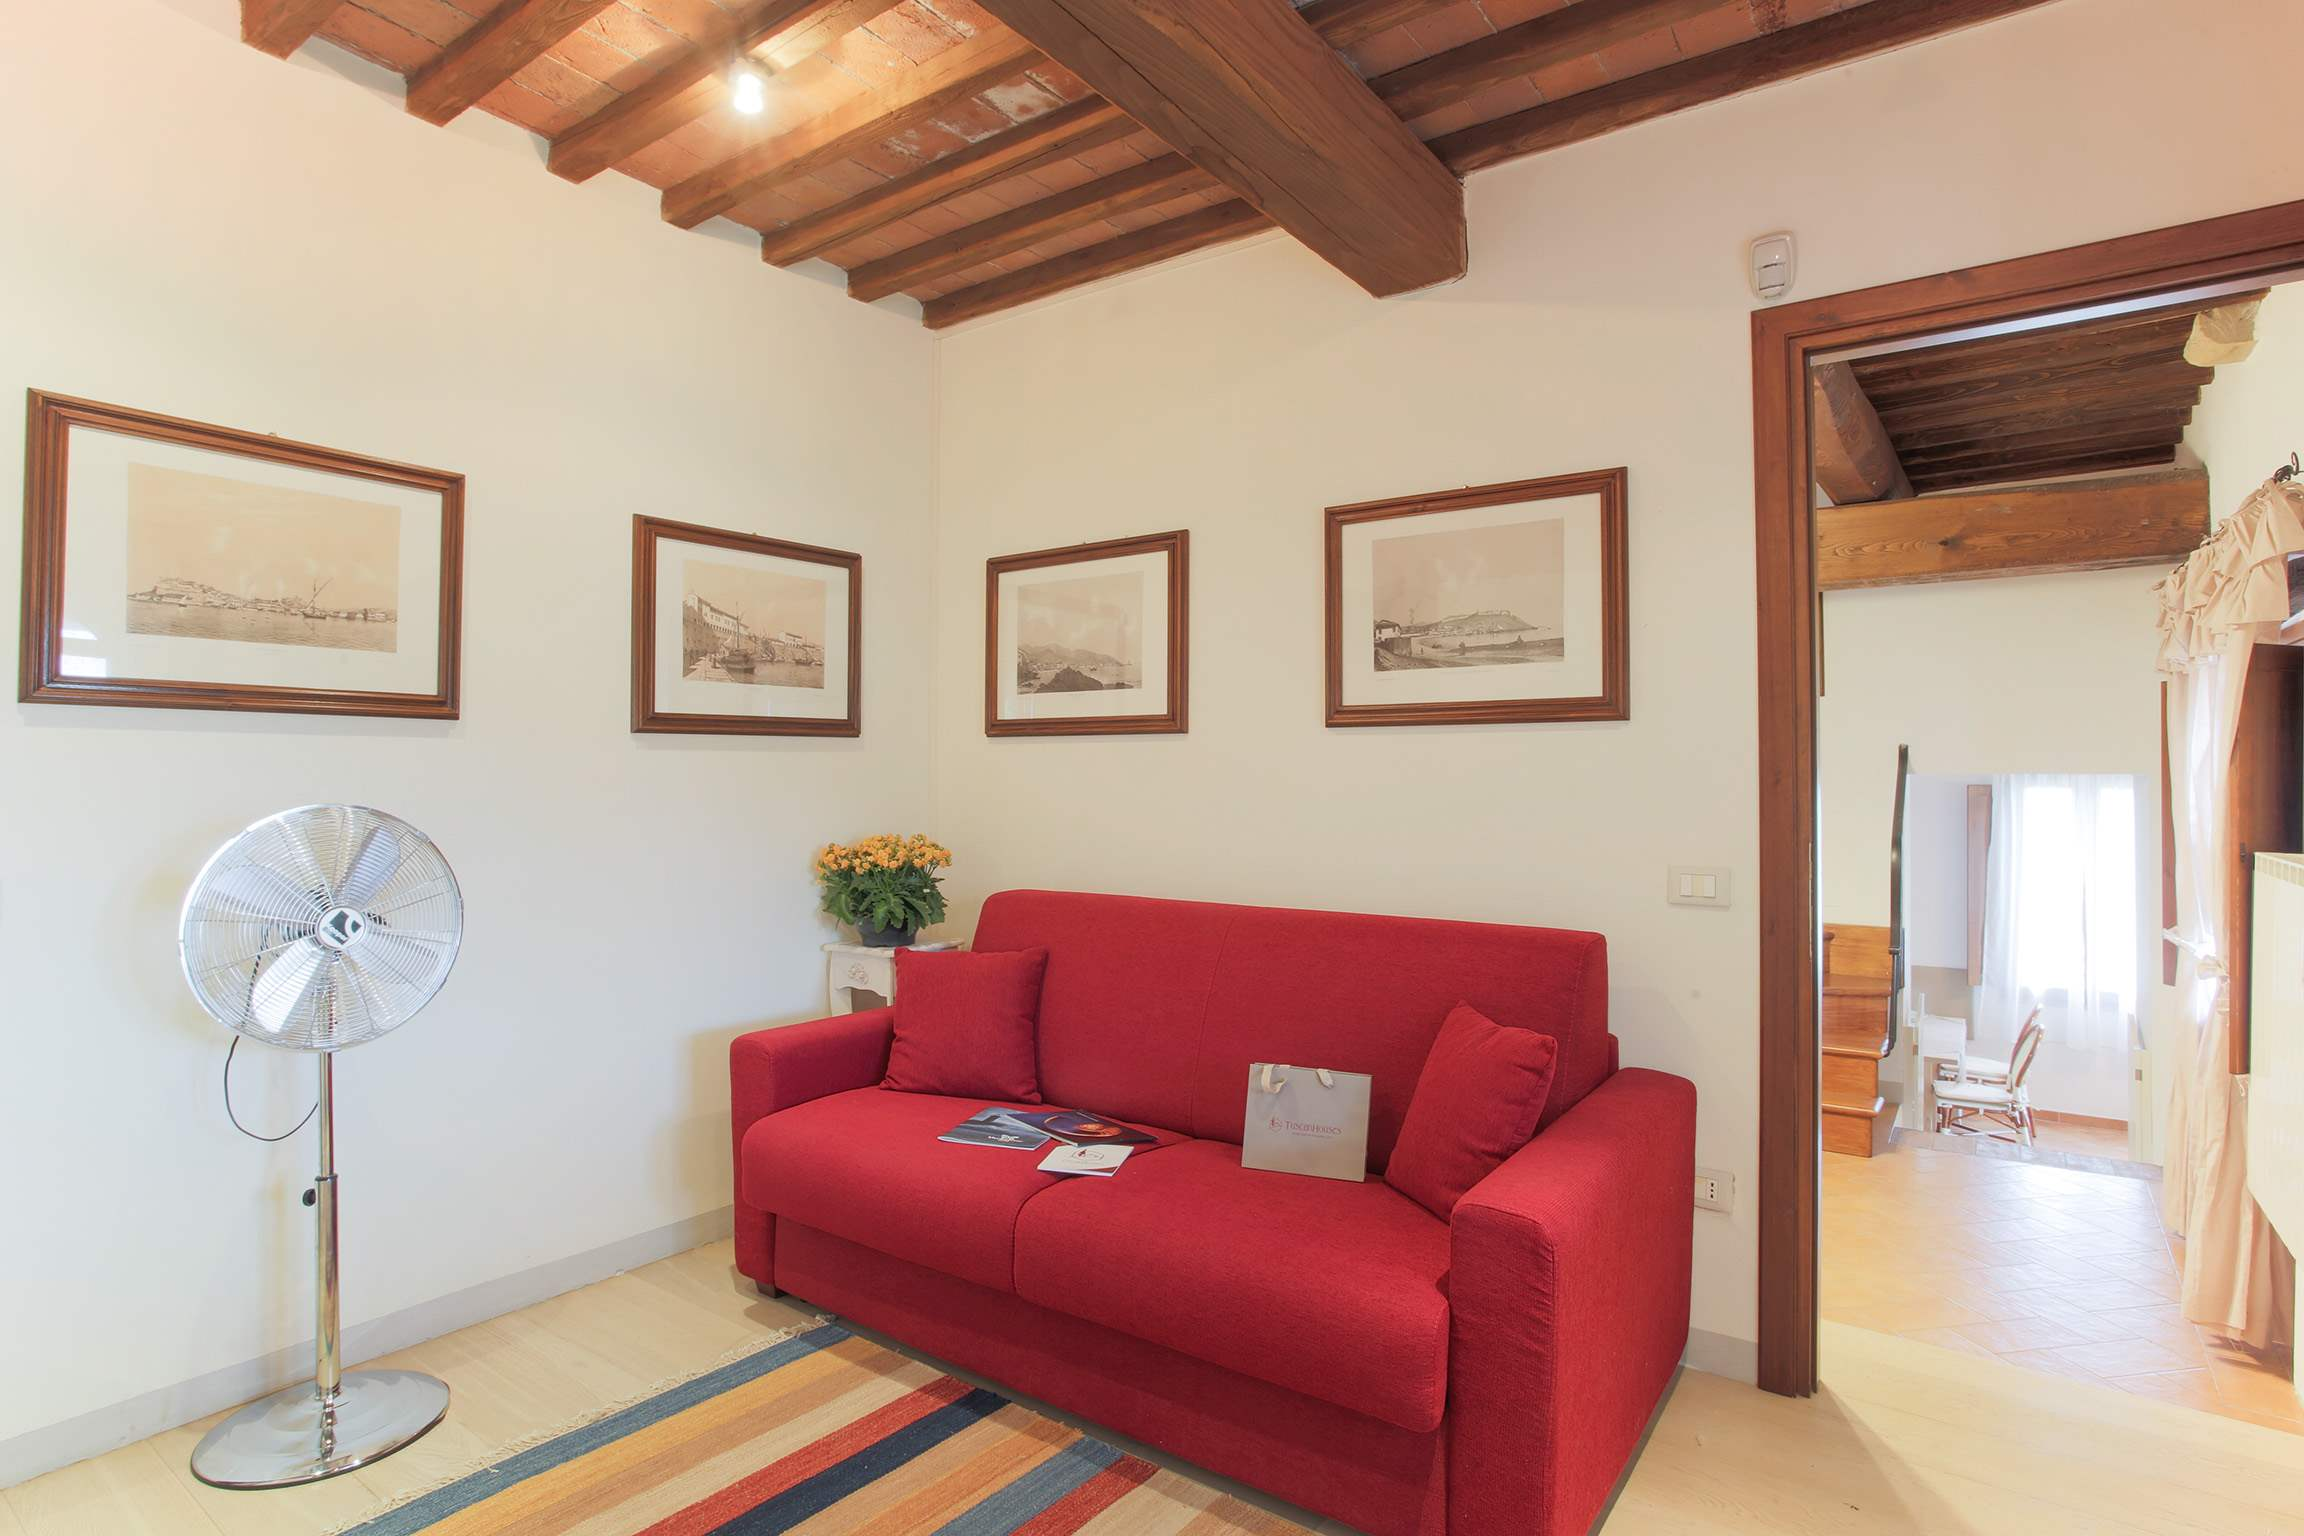 Casa Di Dante, 3 bedroom villa in North Tuscany - Pisa & Lucca Area, Tuscany Photo #16